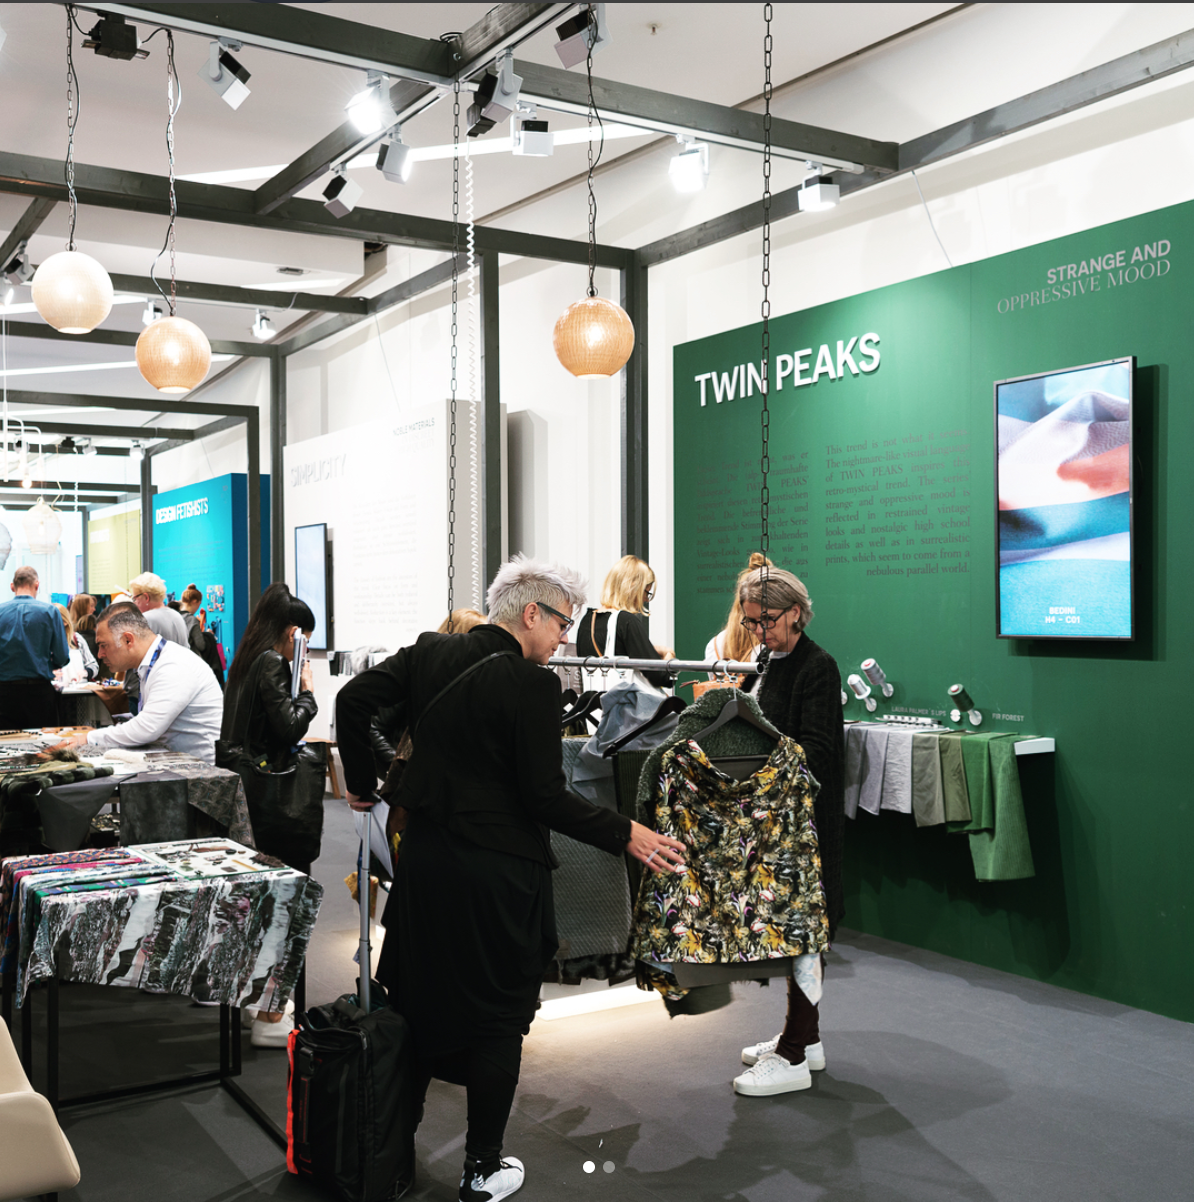 At the Fabric Start foyer, 10 key trends for the AW 18/19 season were presented. Unfortunately we weren't allowed to take our own photos, so this one is courtesy of Munich Fabric Start.